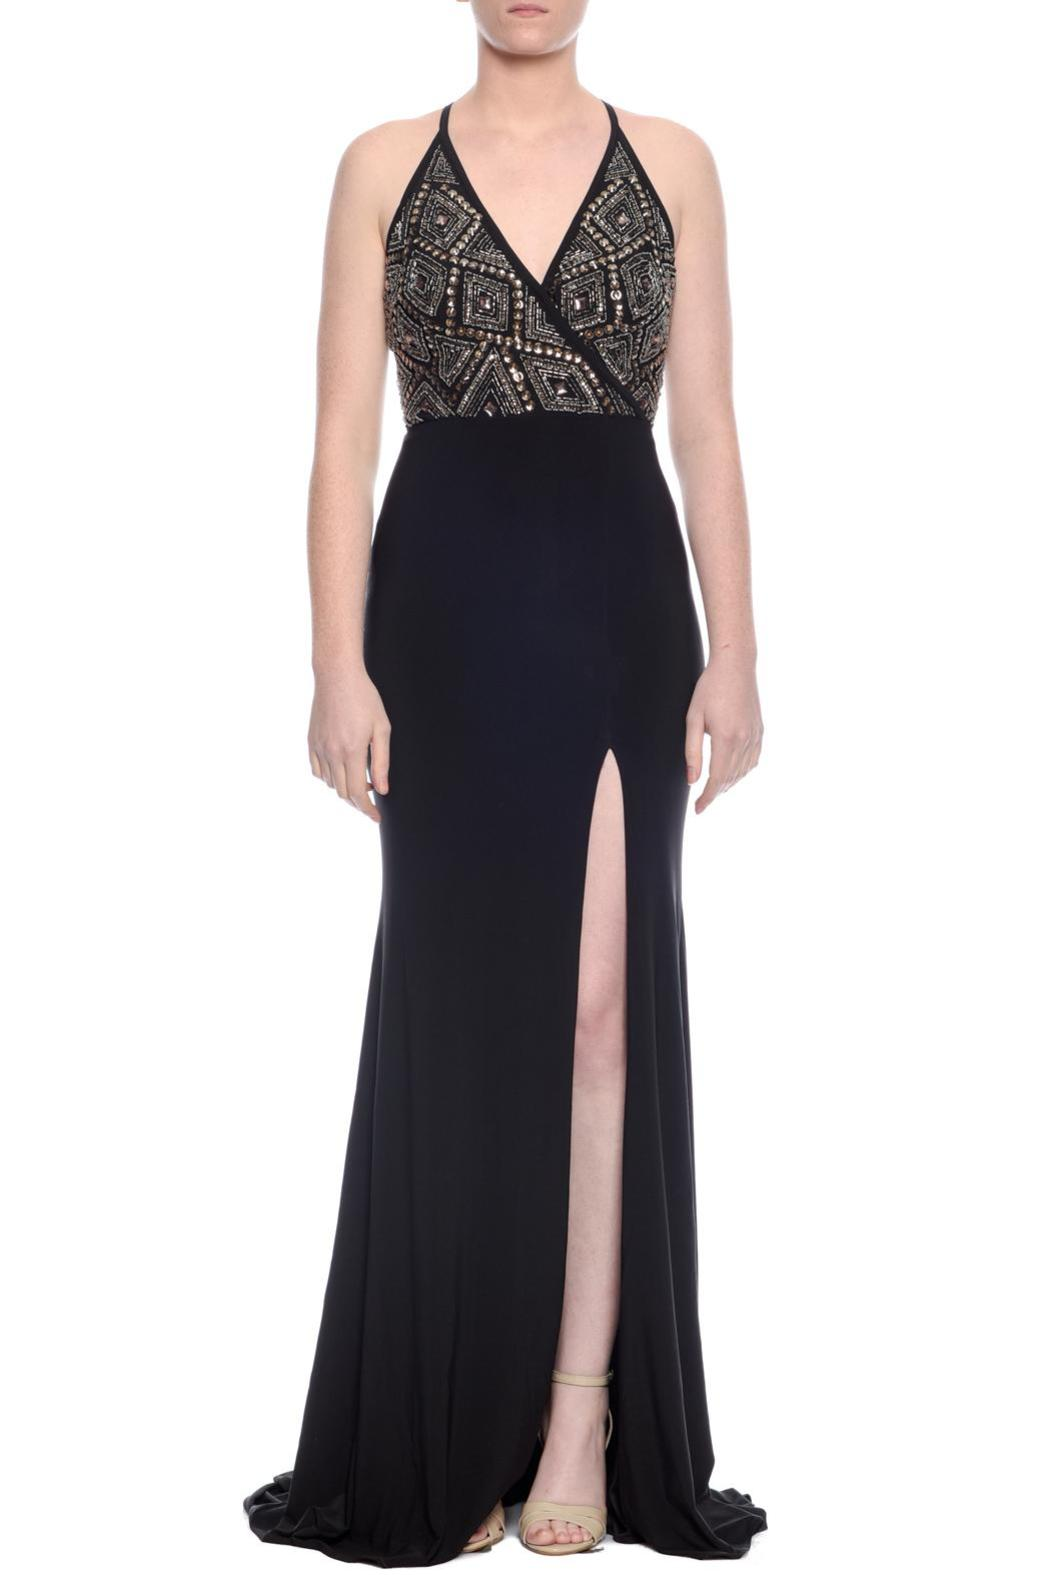 b62bc31c70 Jadore Dolce Dress from Sydney by Windsor and Lux — Shoptiques